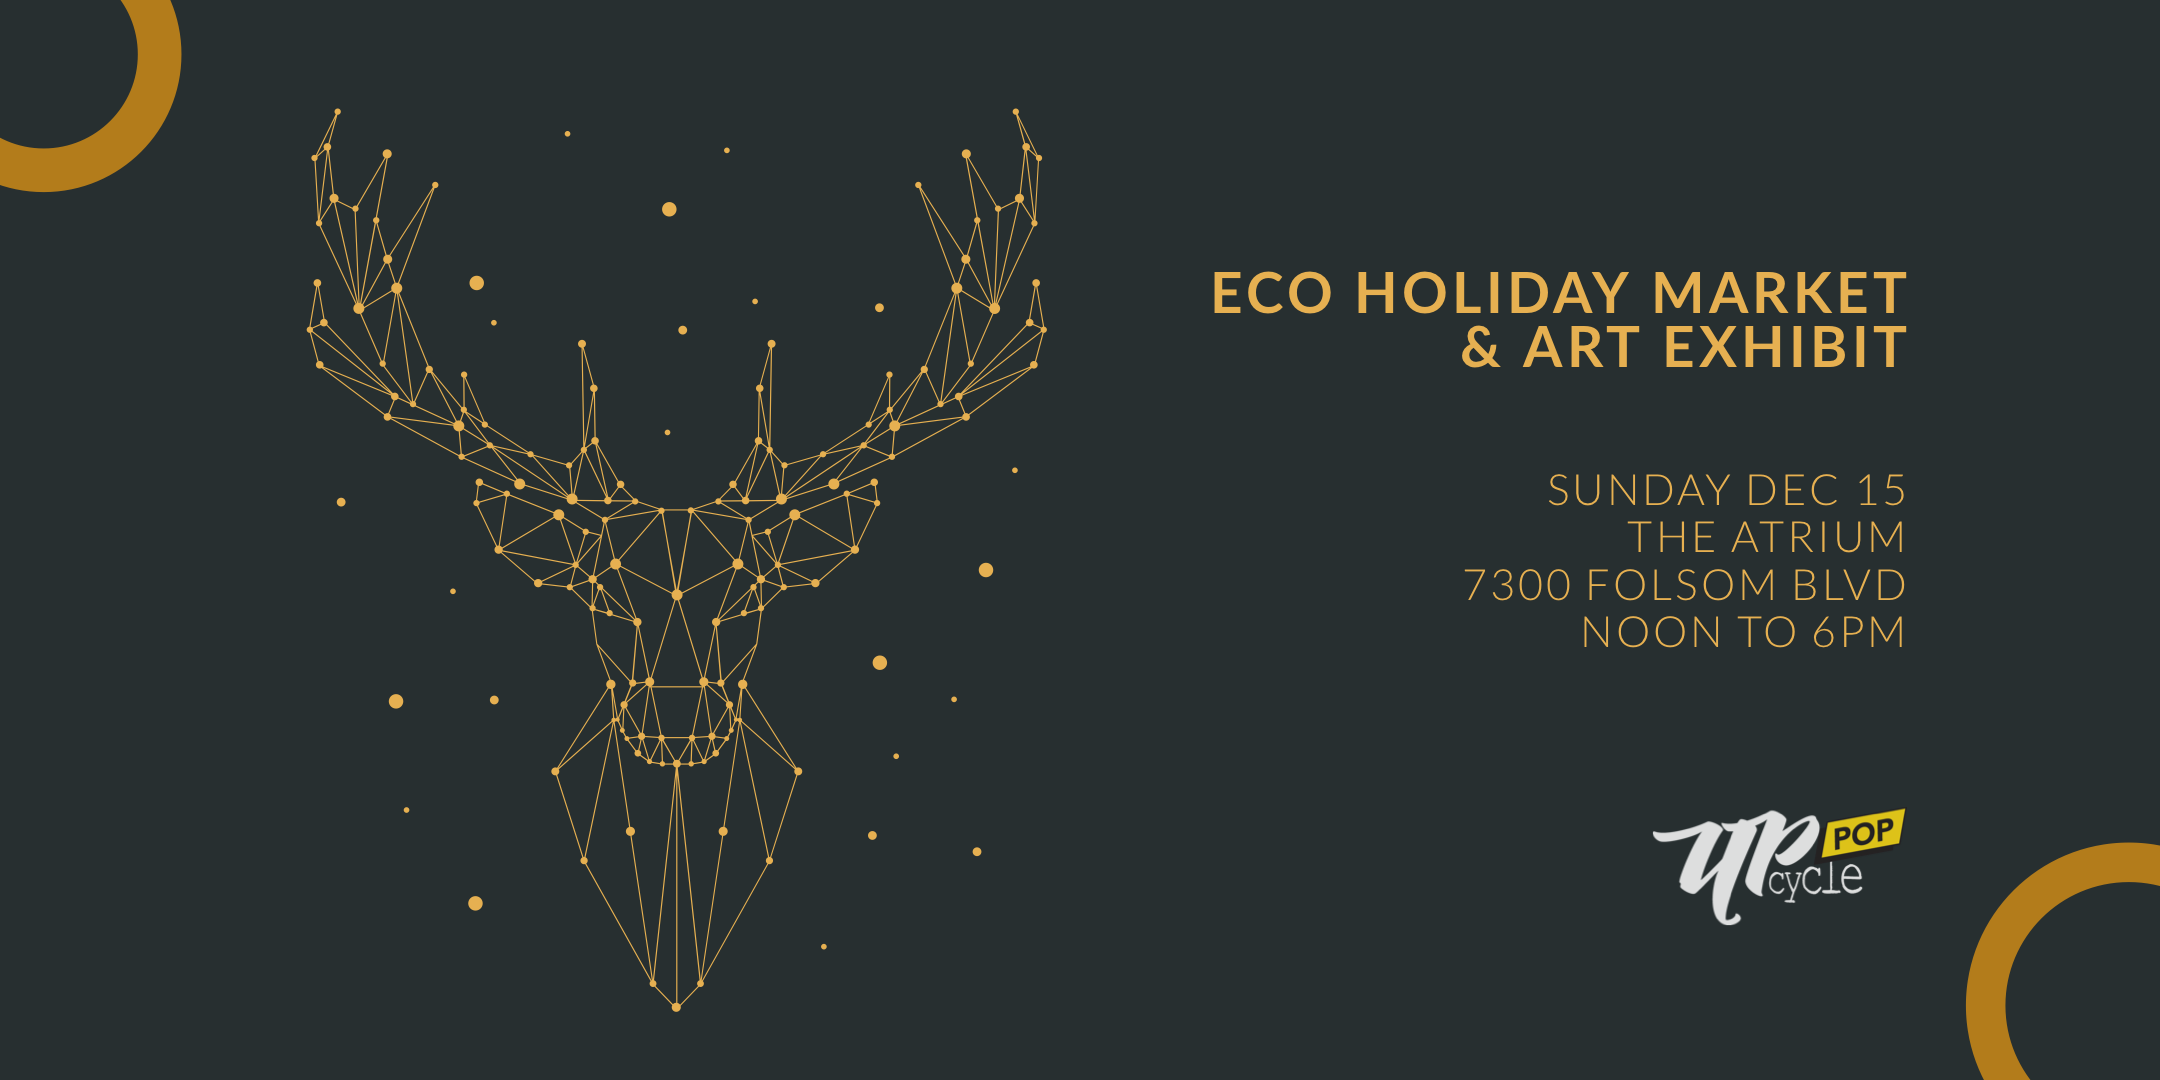 Upcycle Pop 2019 - Sustainable holiday shopping event and art exhibits